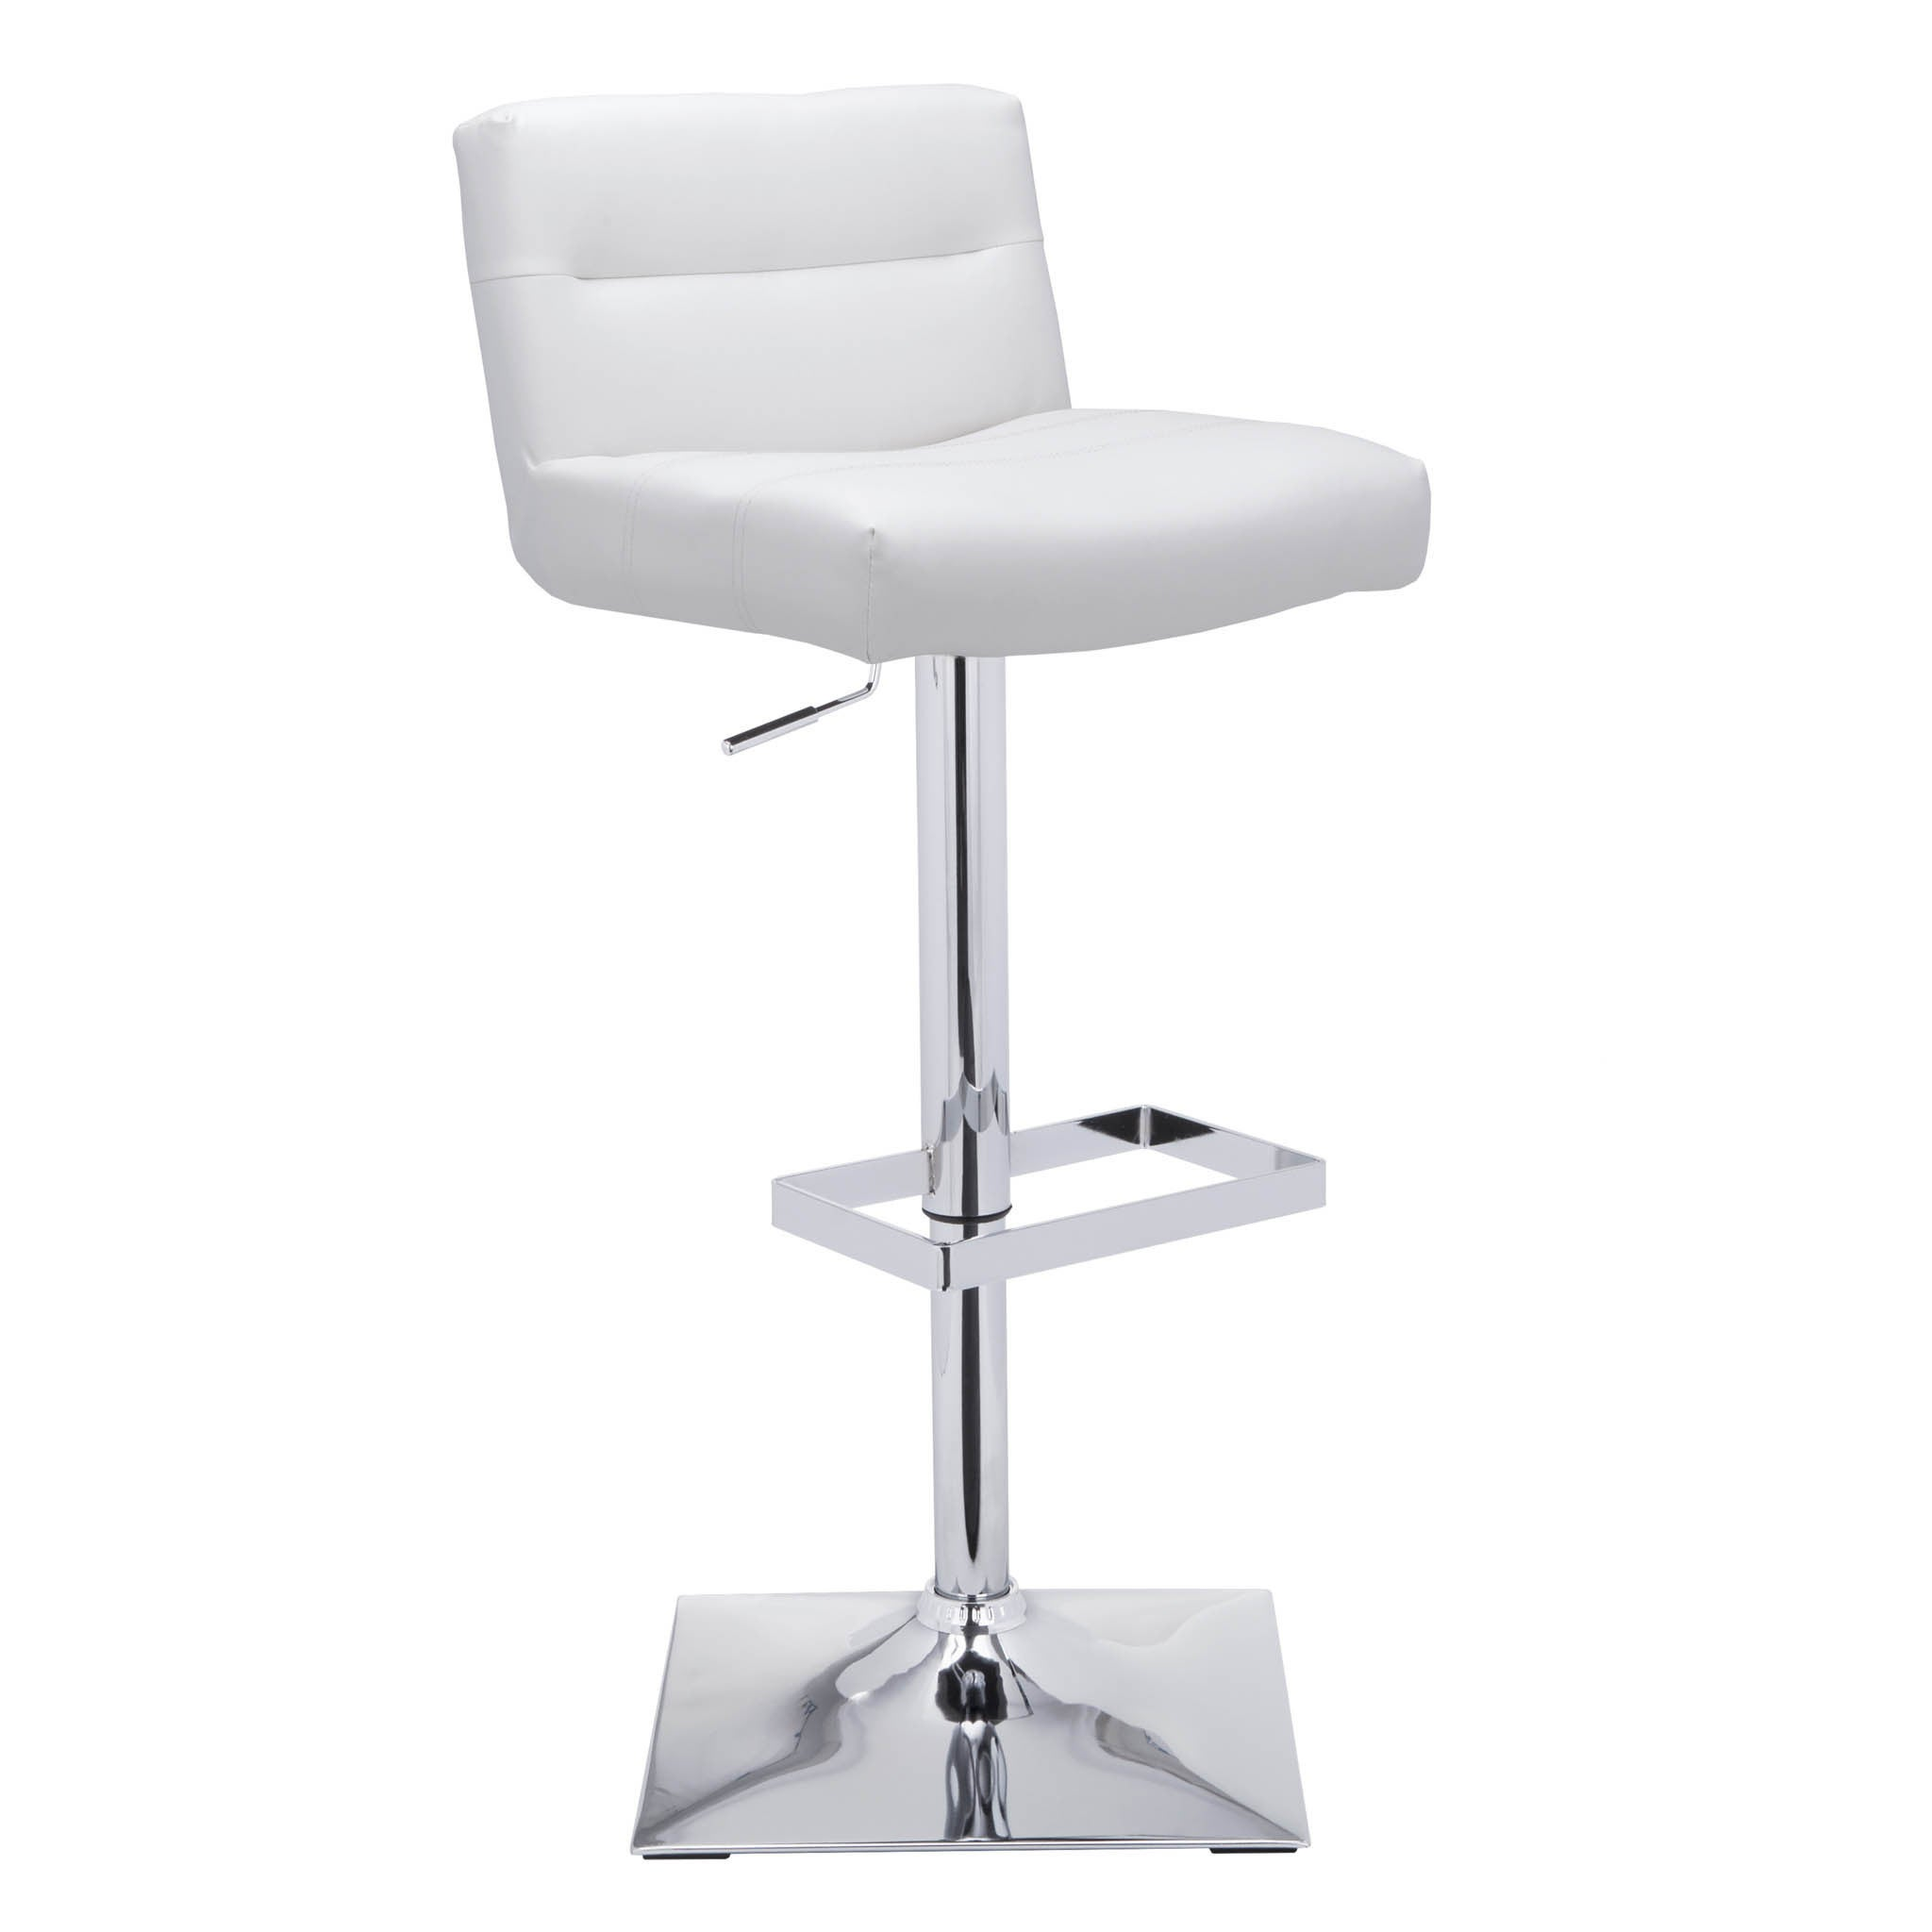 Genial Shop Sunpan U0027Urban Unityu0027 Stafford Faux Leather Adjustable Bar Stool   On  Sale   Free Shipping Today   Overstock.com   9198640